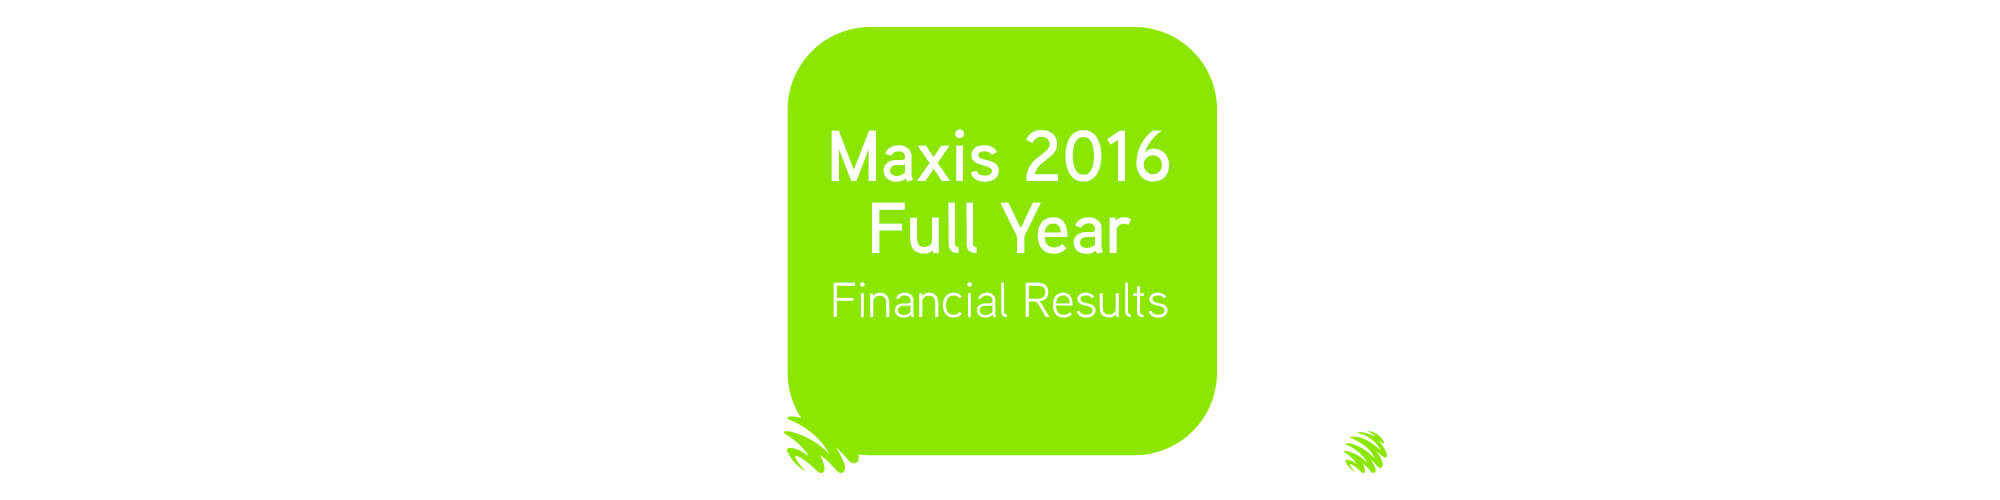 maxis 2016 financial result